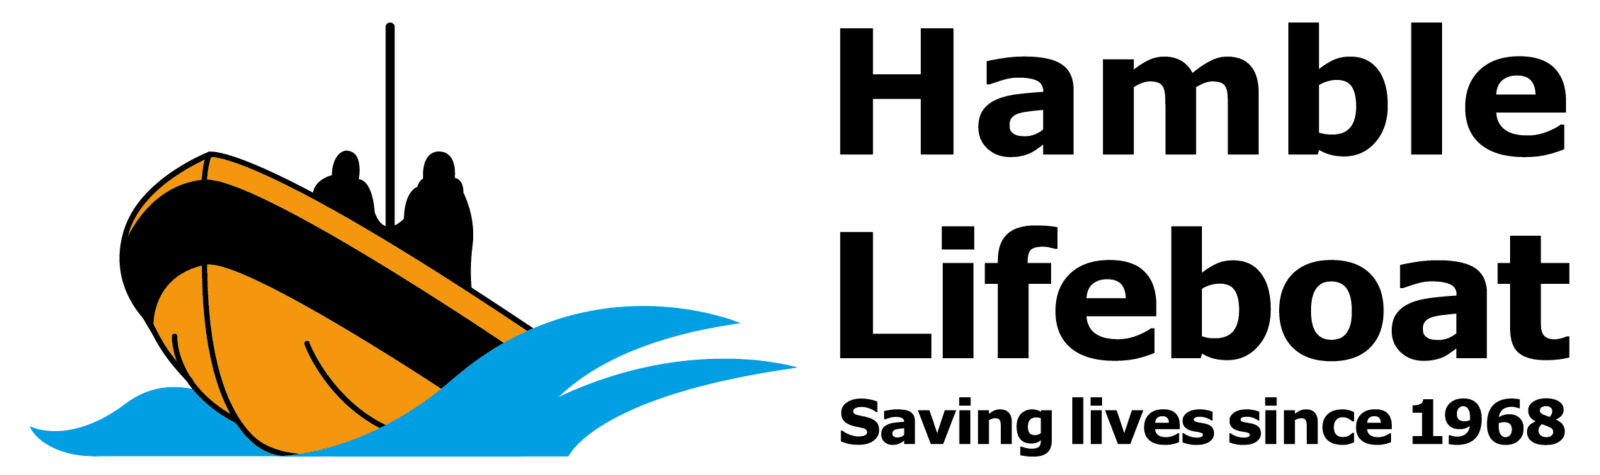 Hamble Lifeboat logo